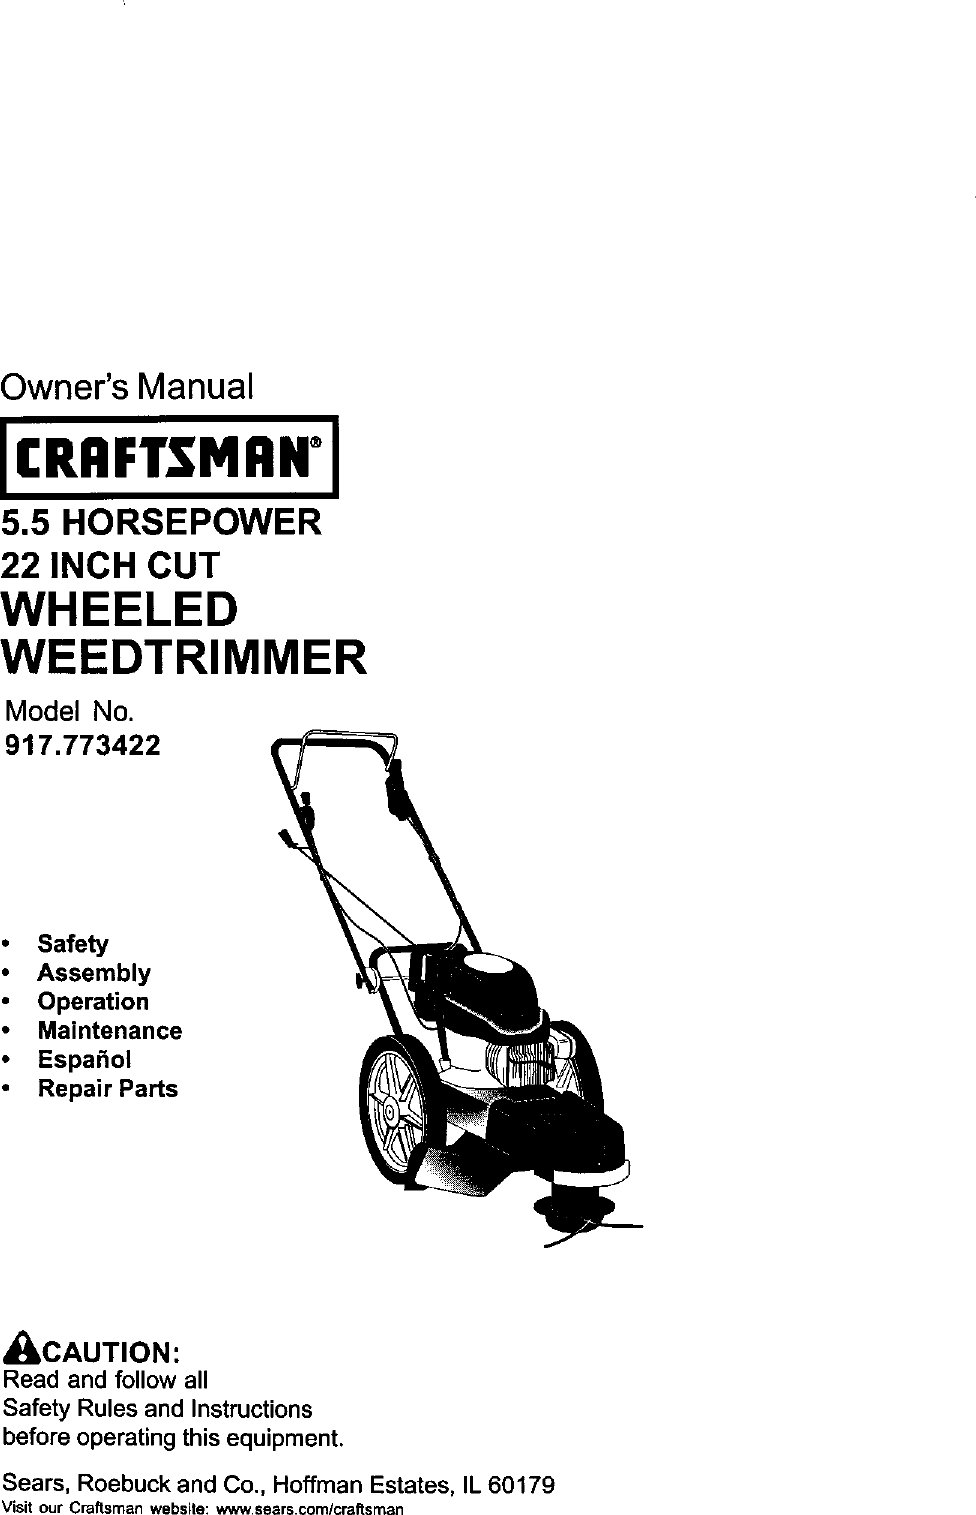 Craftsman 917773422 User Manual HIGH WHEEL WEED TRIMMER